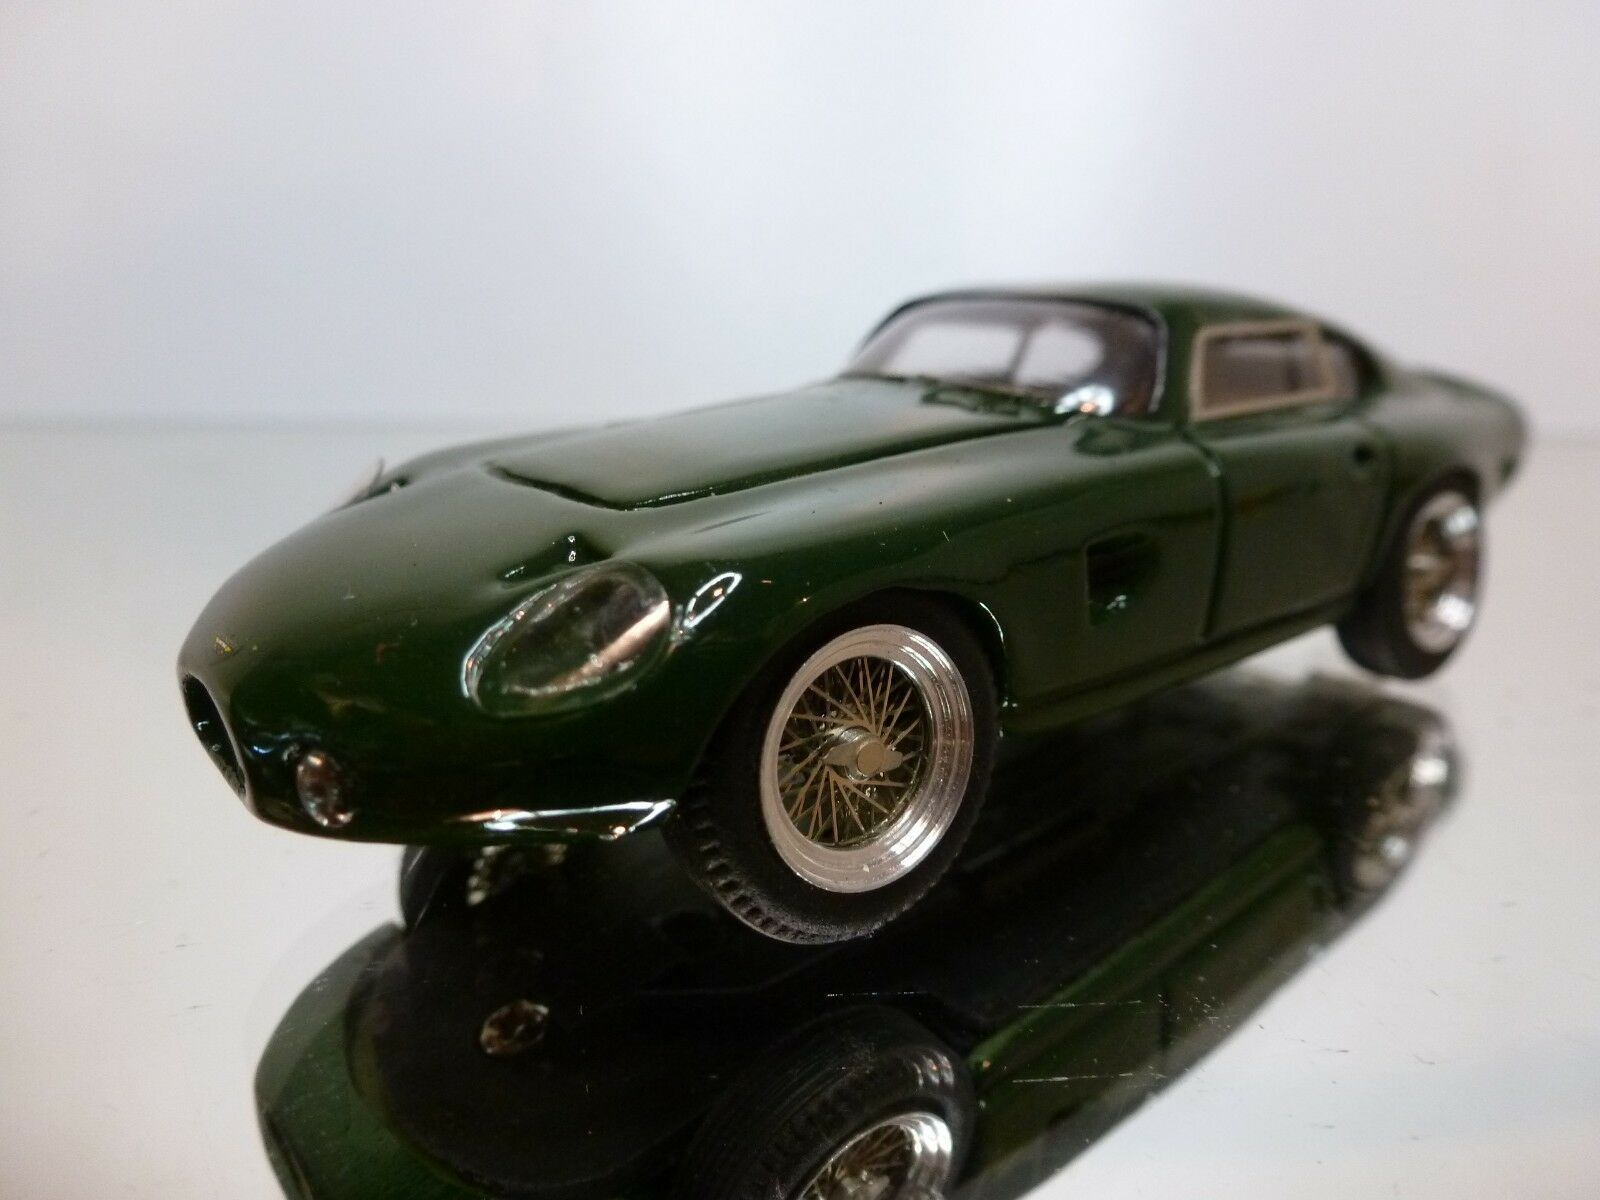 JOLLY MODELS 55 ASTON MARTIN P214 1963 - vert 1 43 - EXCELLENT CONDITION - 13 9